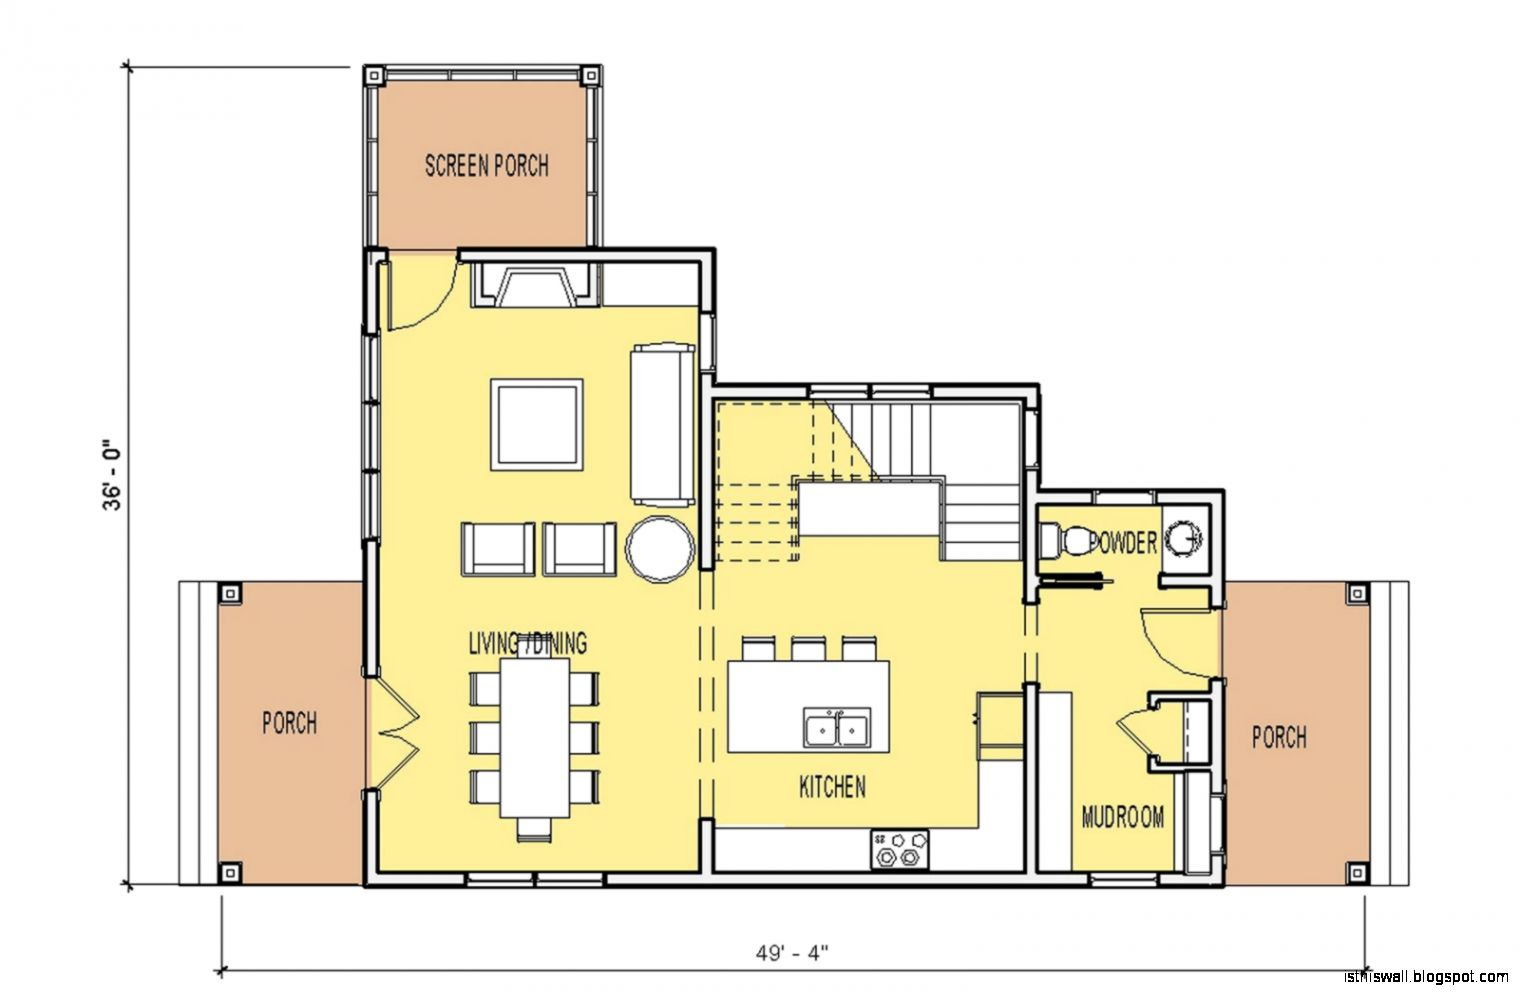 Unique house plans plan 034h 0121 find unique house for Design small house plans